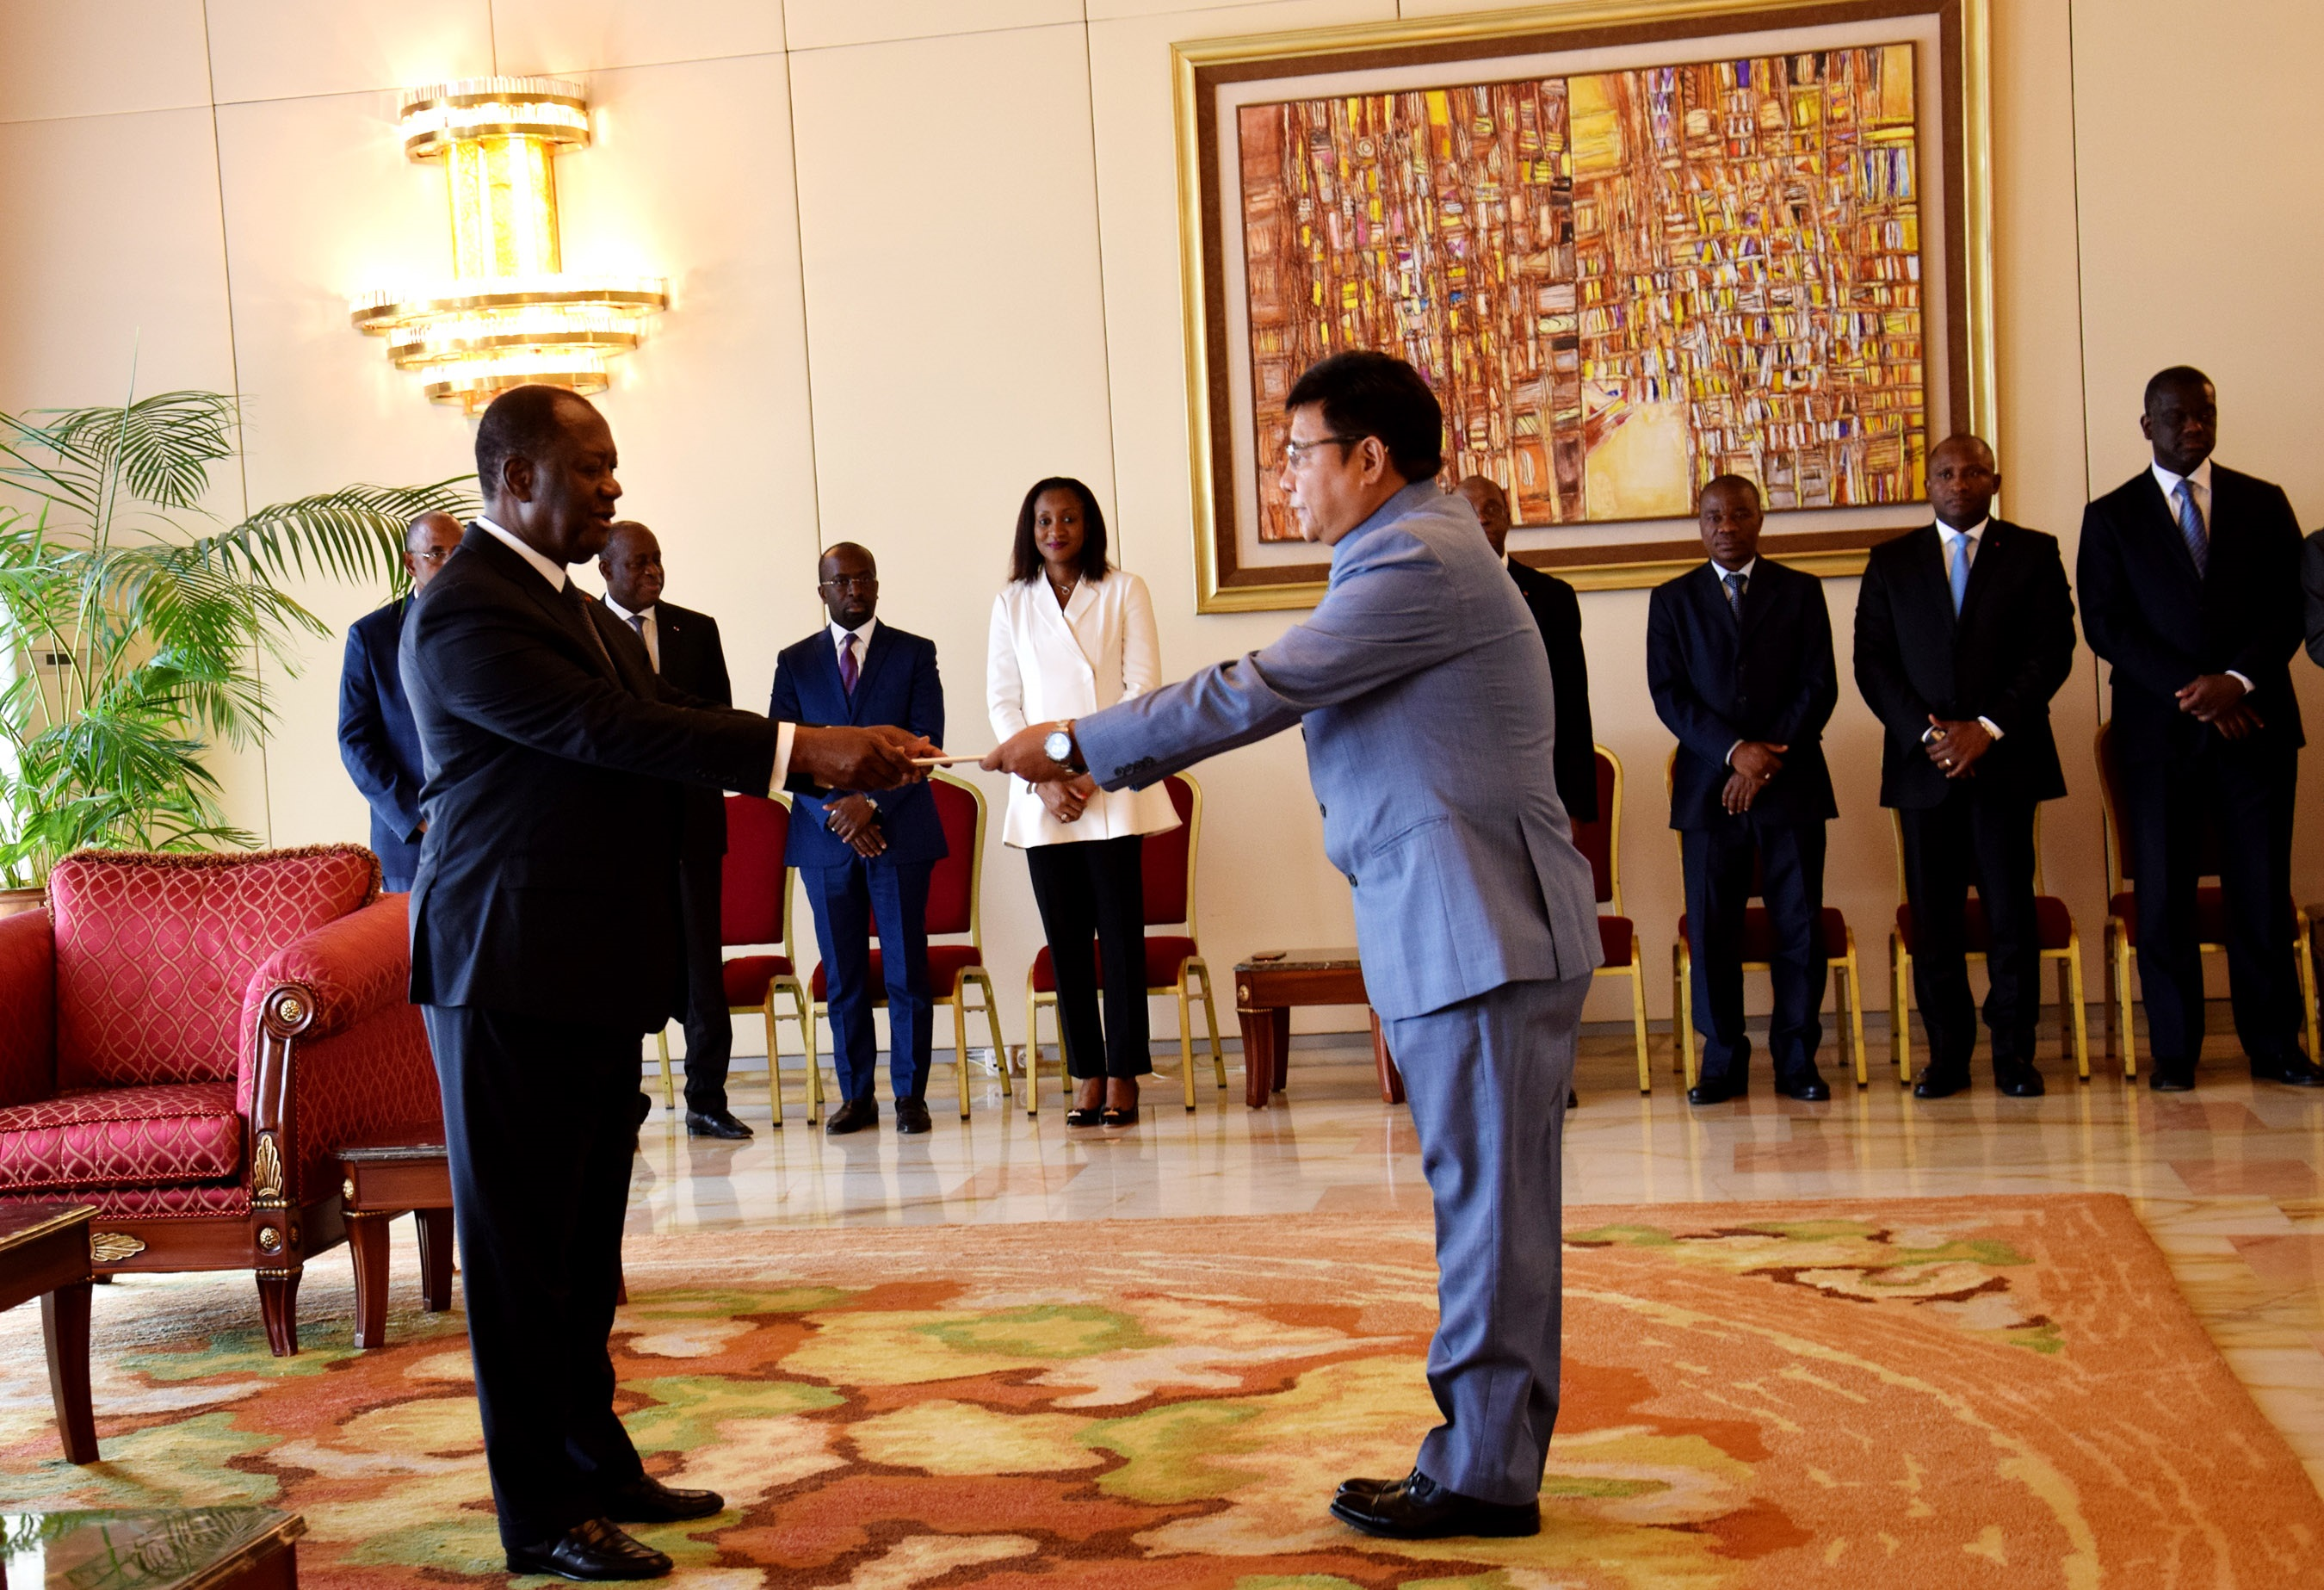 H. E. Mr. Sailas Thangal presenting his credential letter to the President Alassane Ouattara